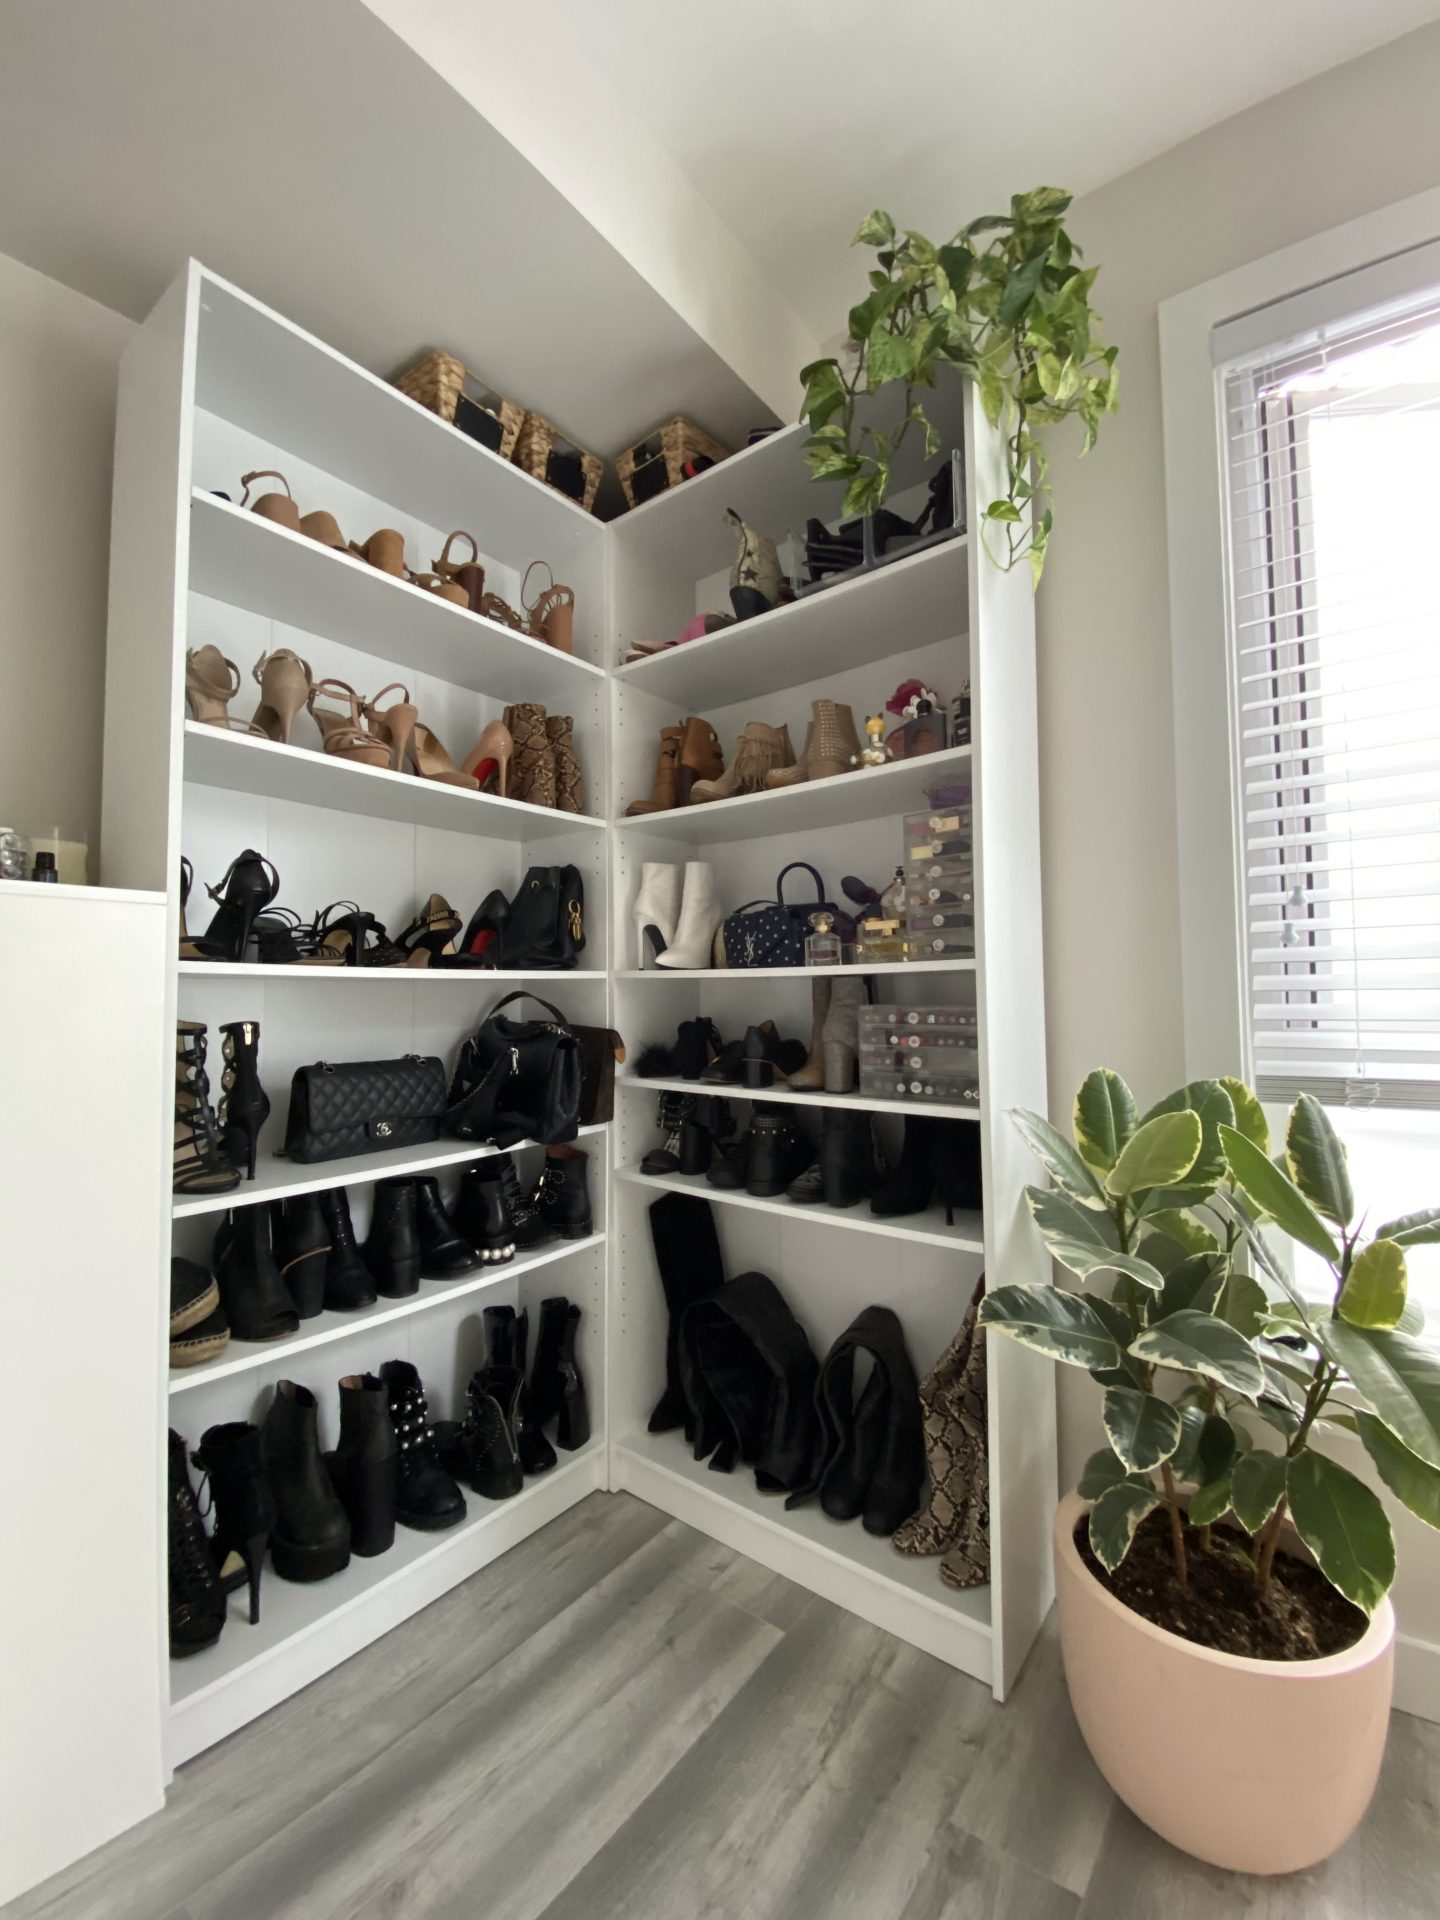 Karissa's Shoe Shelf